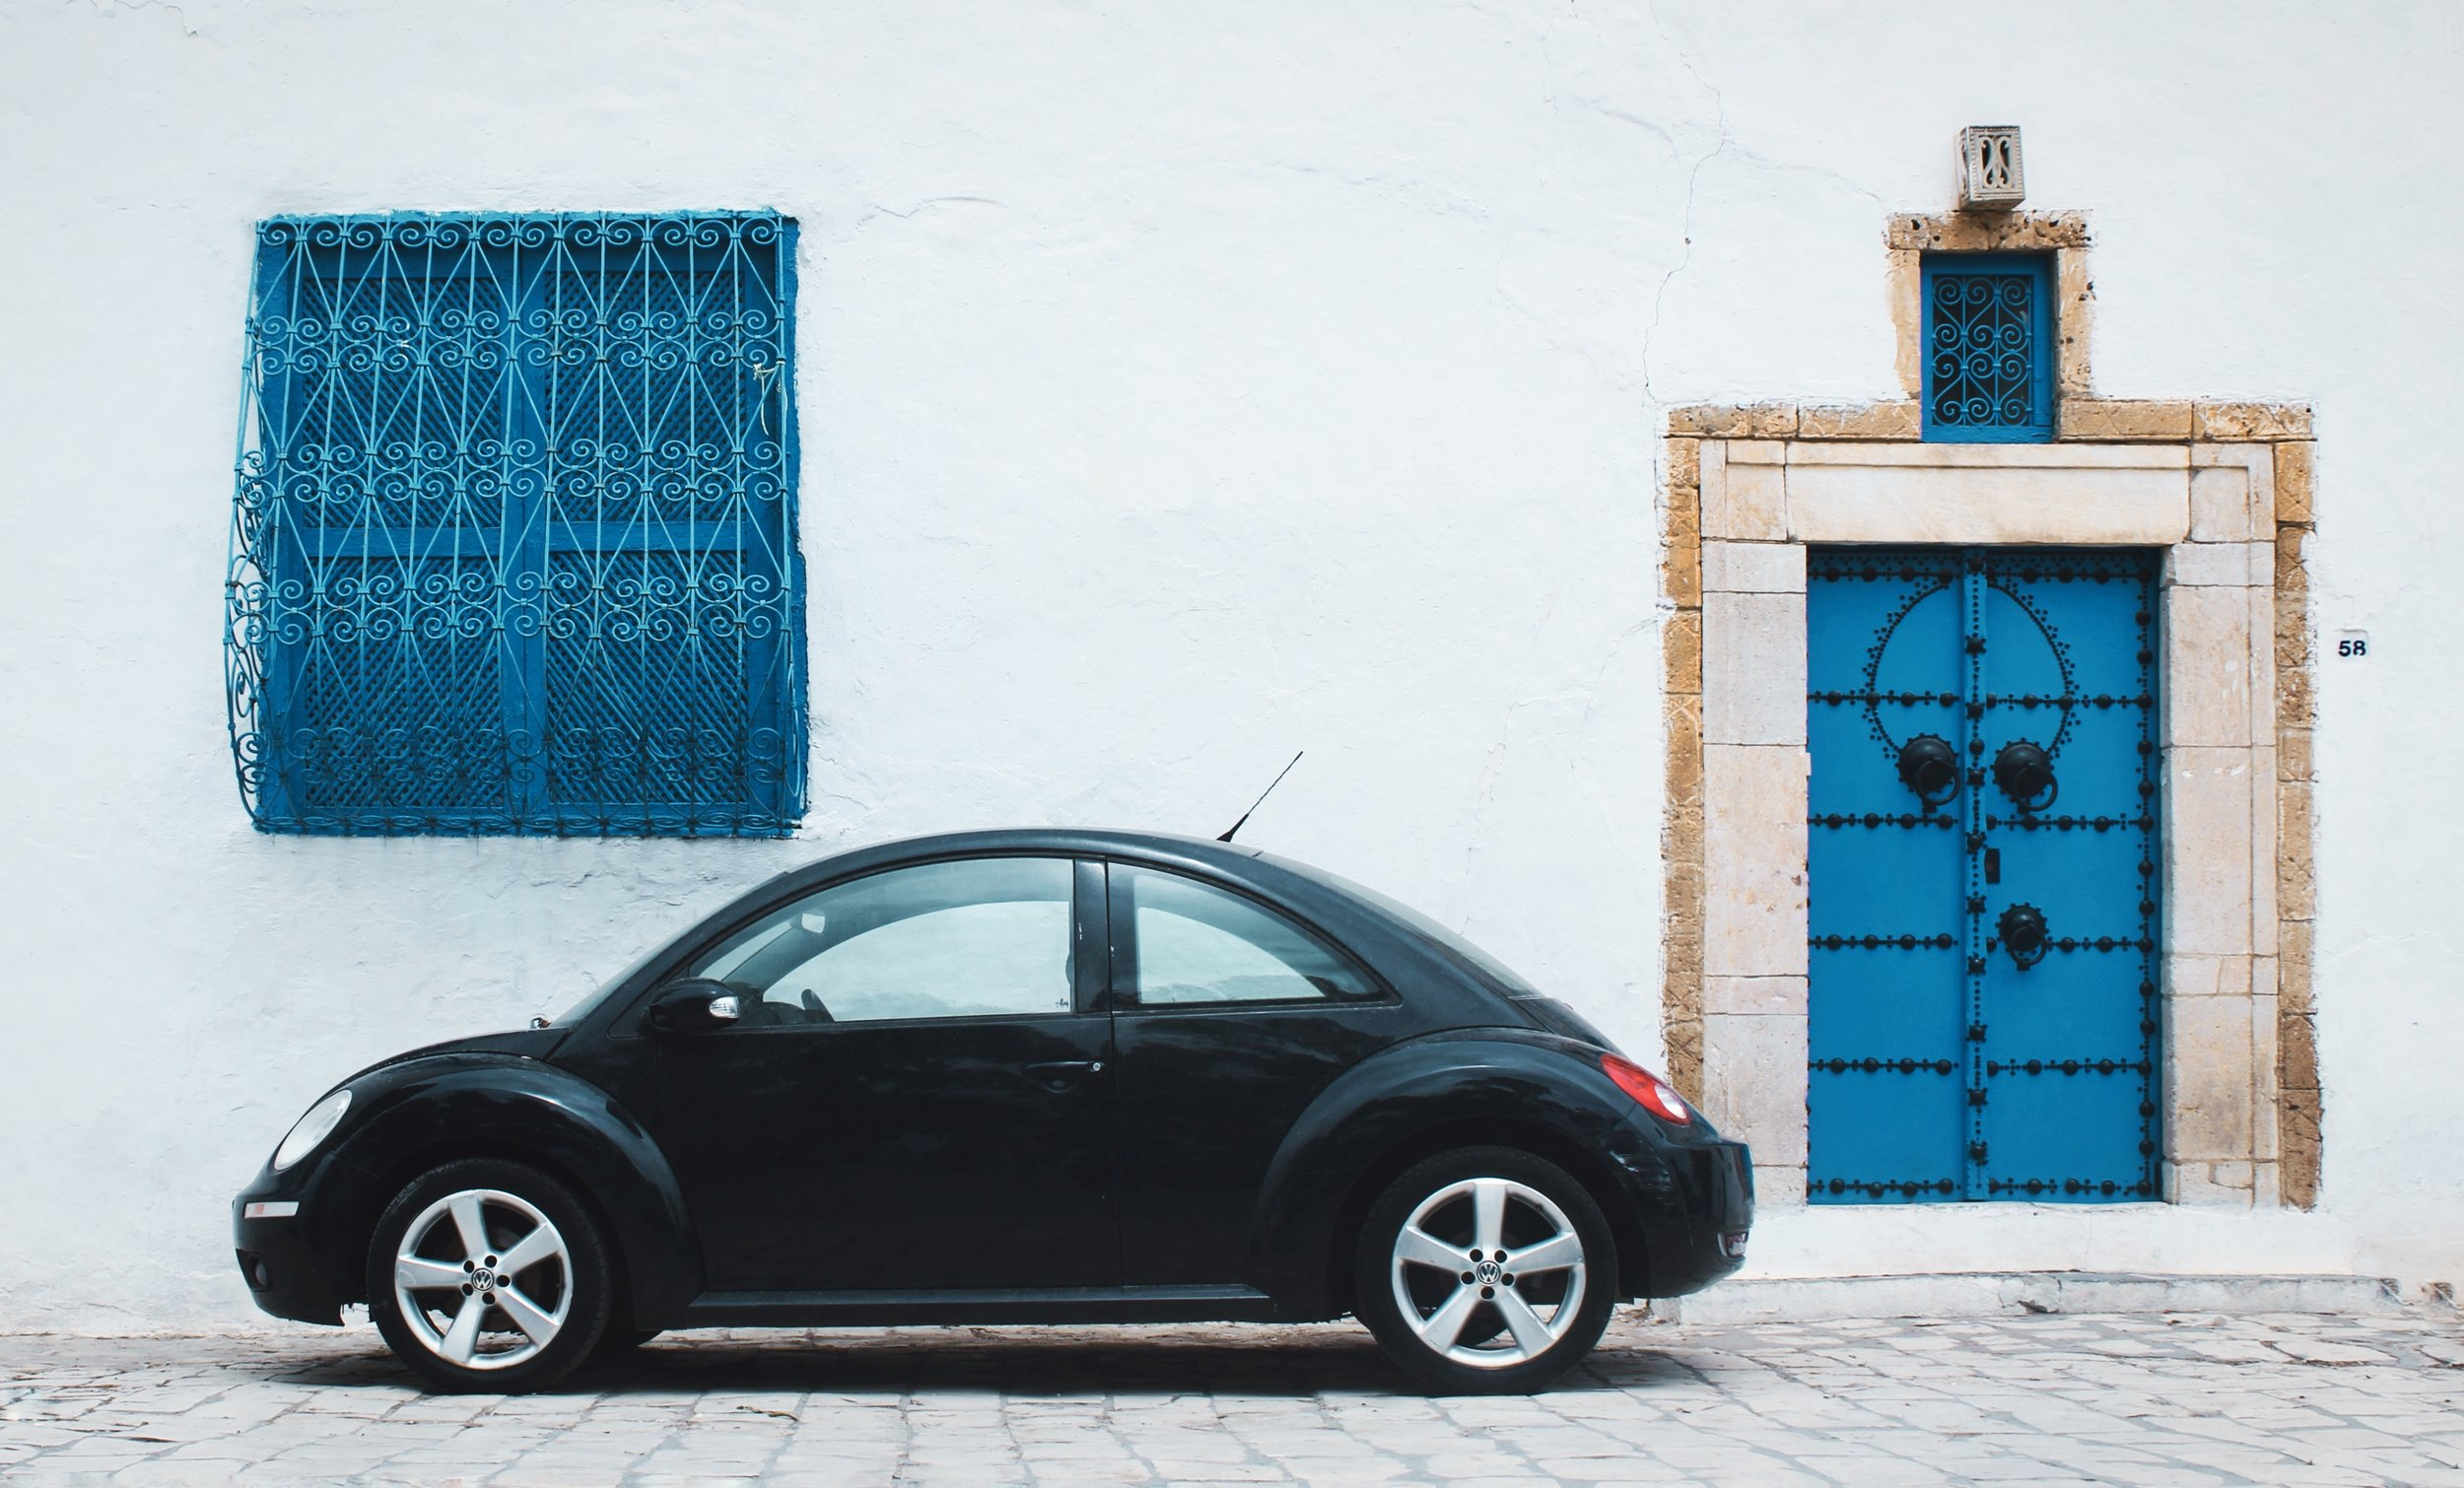 Sidi Bou Said, Carthage, Tunisia  Photo by  Haythem Gataa  on  Unsplash